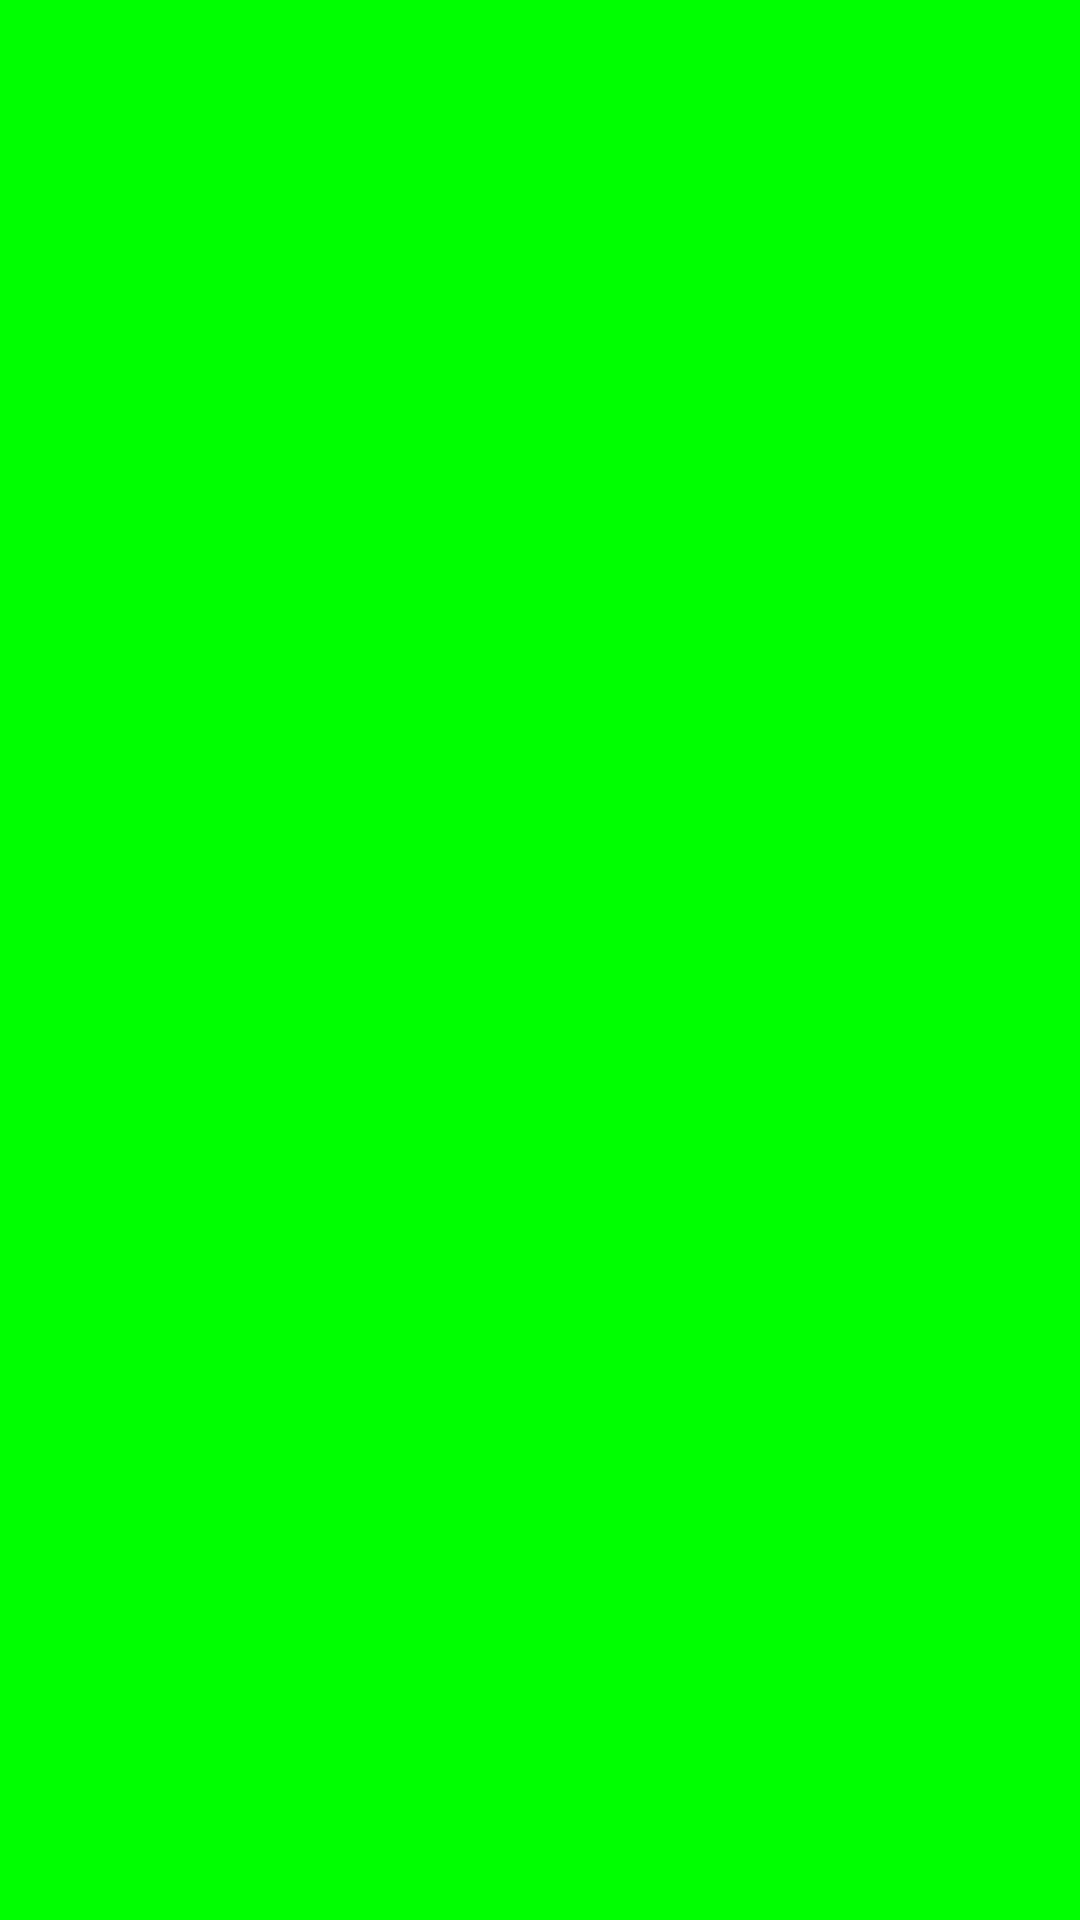 1080x1920 Lime Web Green Solid Color Background